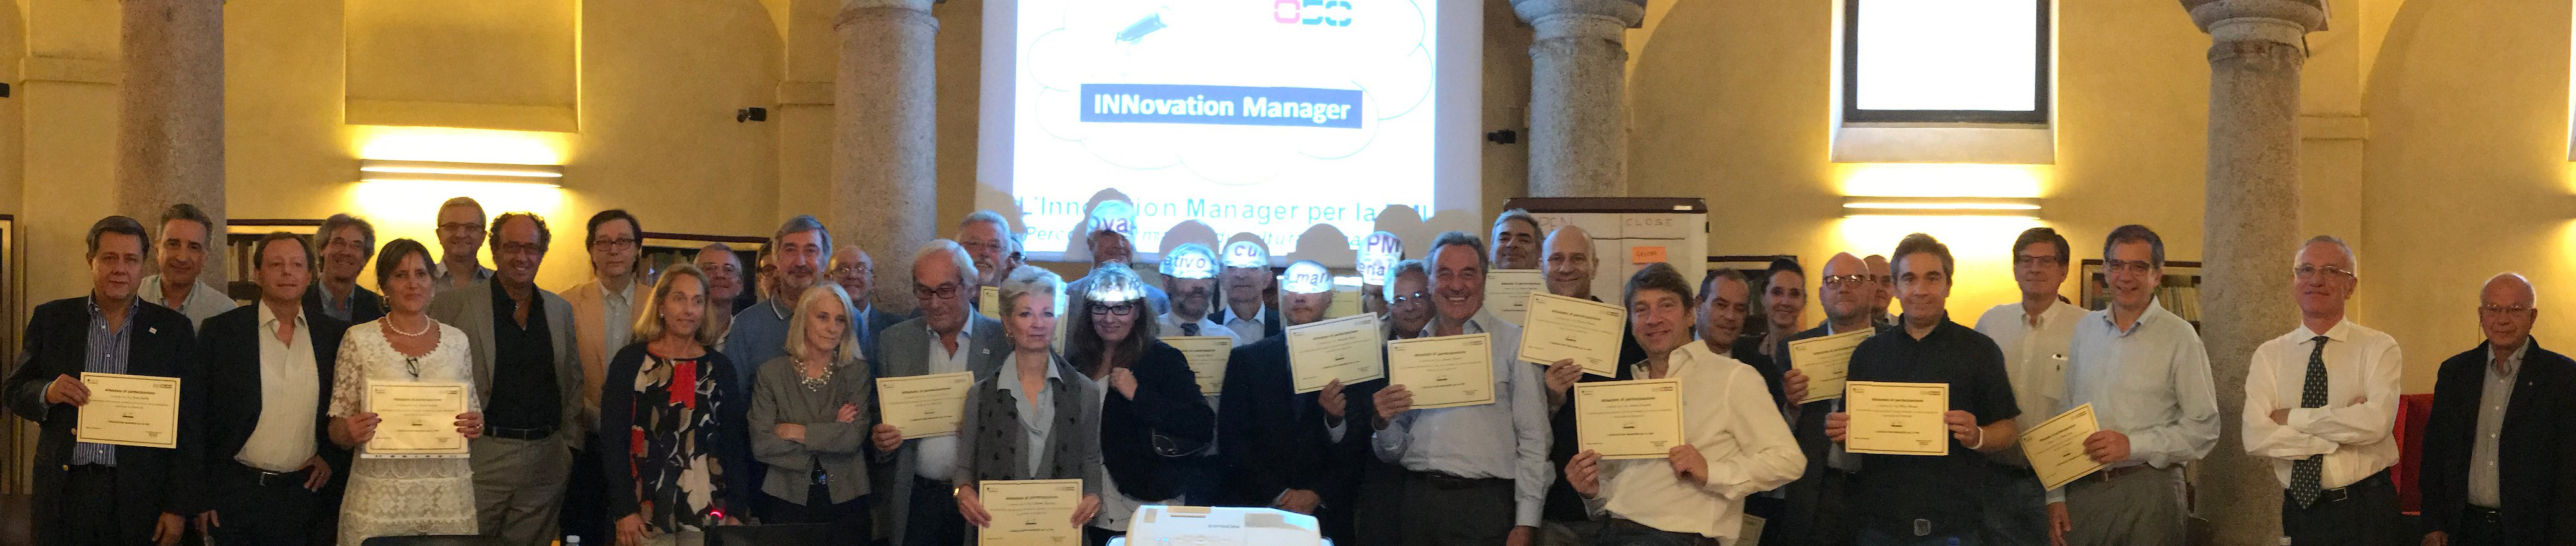 "Corso "" L'Innovation Manager per la PMI"""